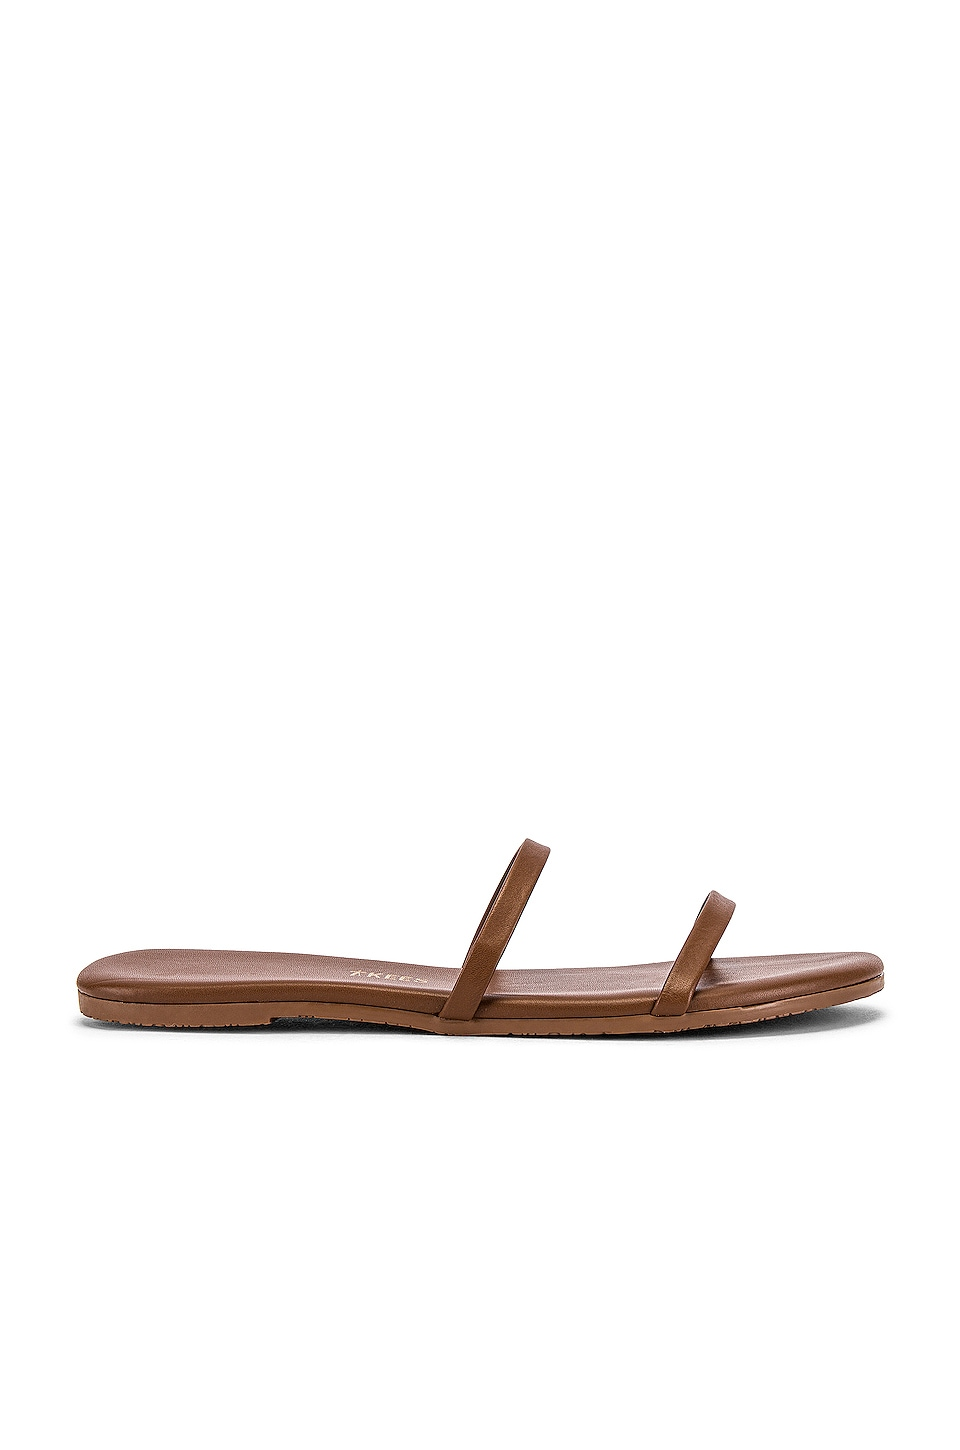 Gemma Sandal by TKEES, available on revolve.com for $50 Alessandra Ambrosio Shoes Exact Product